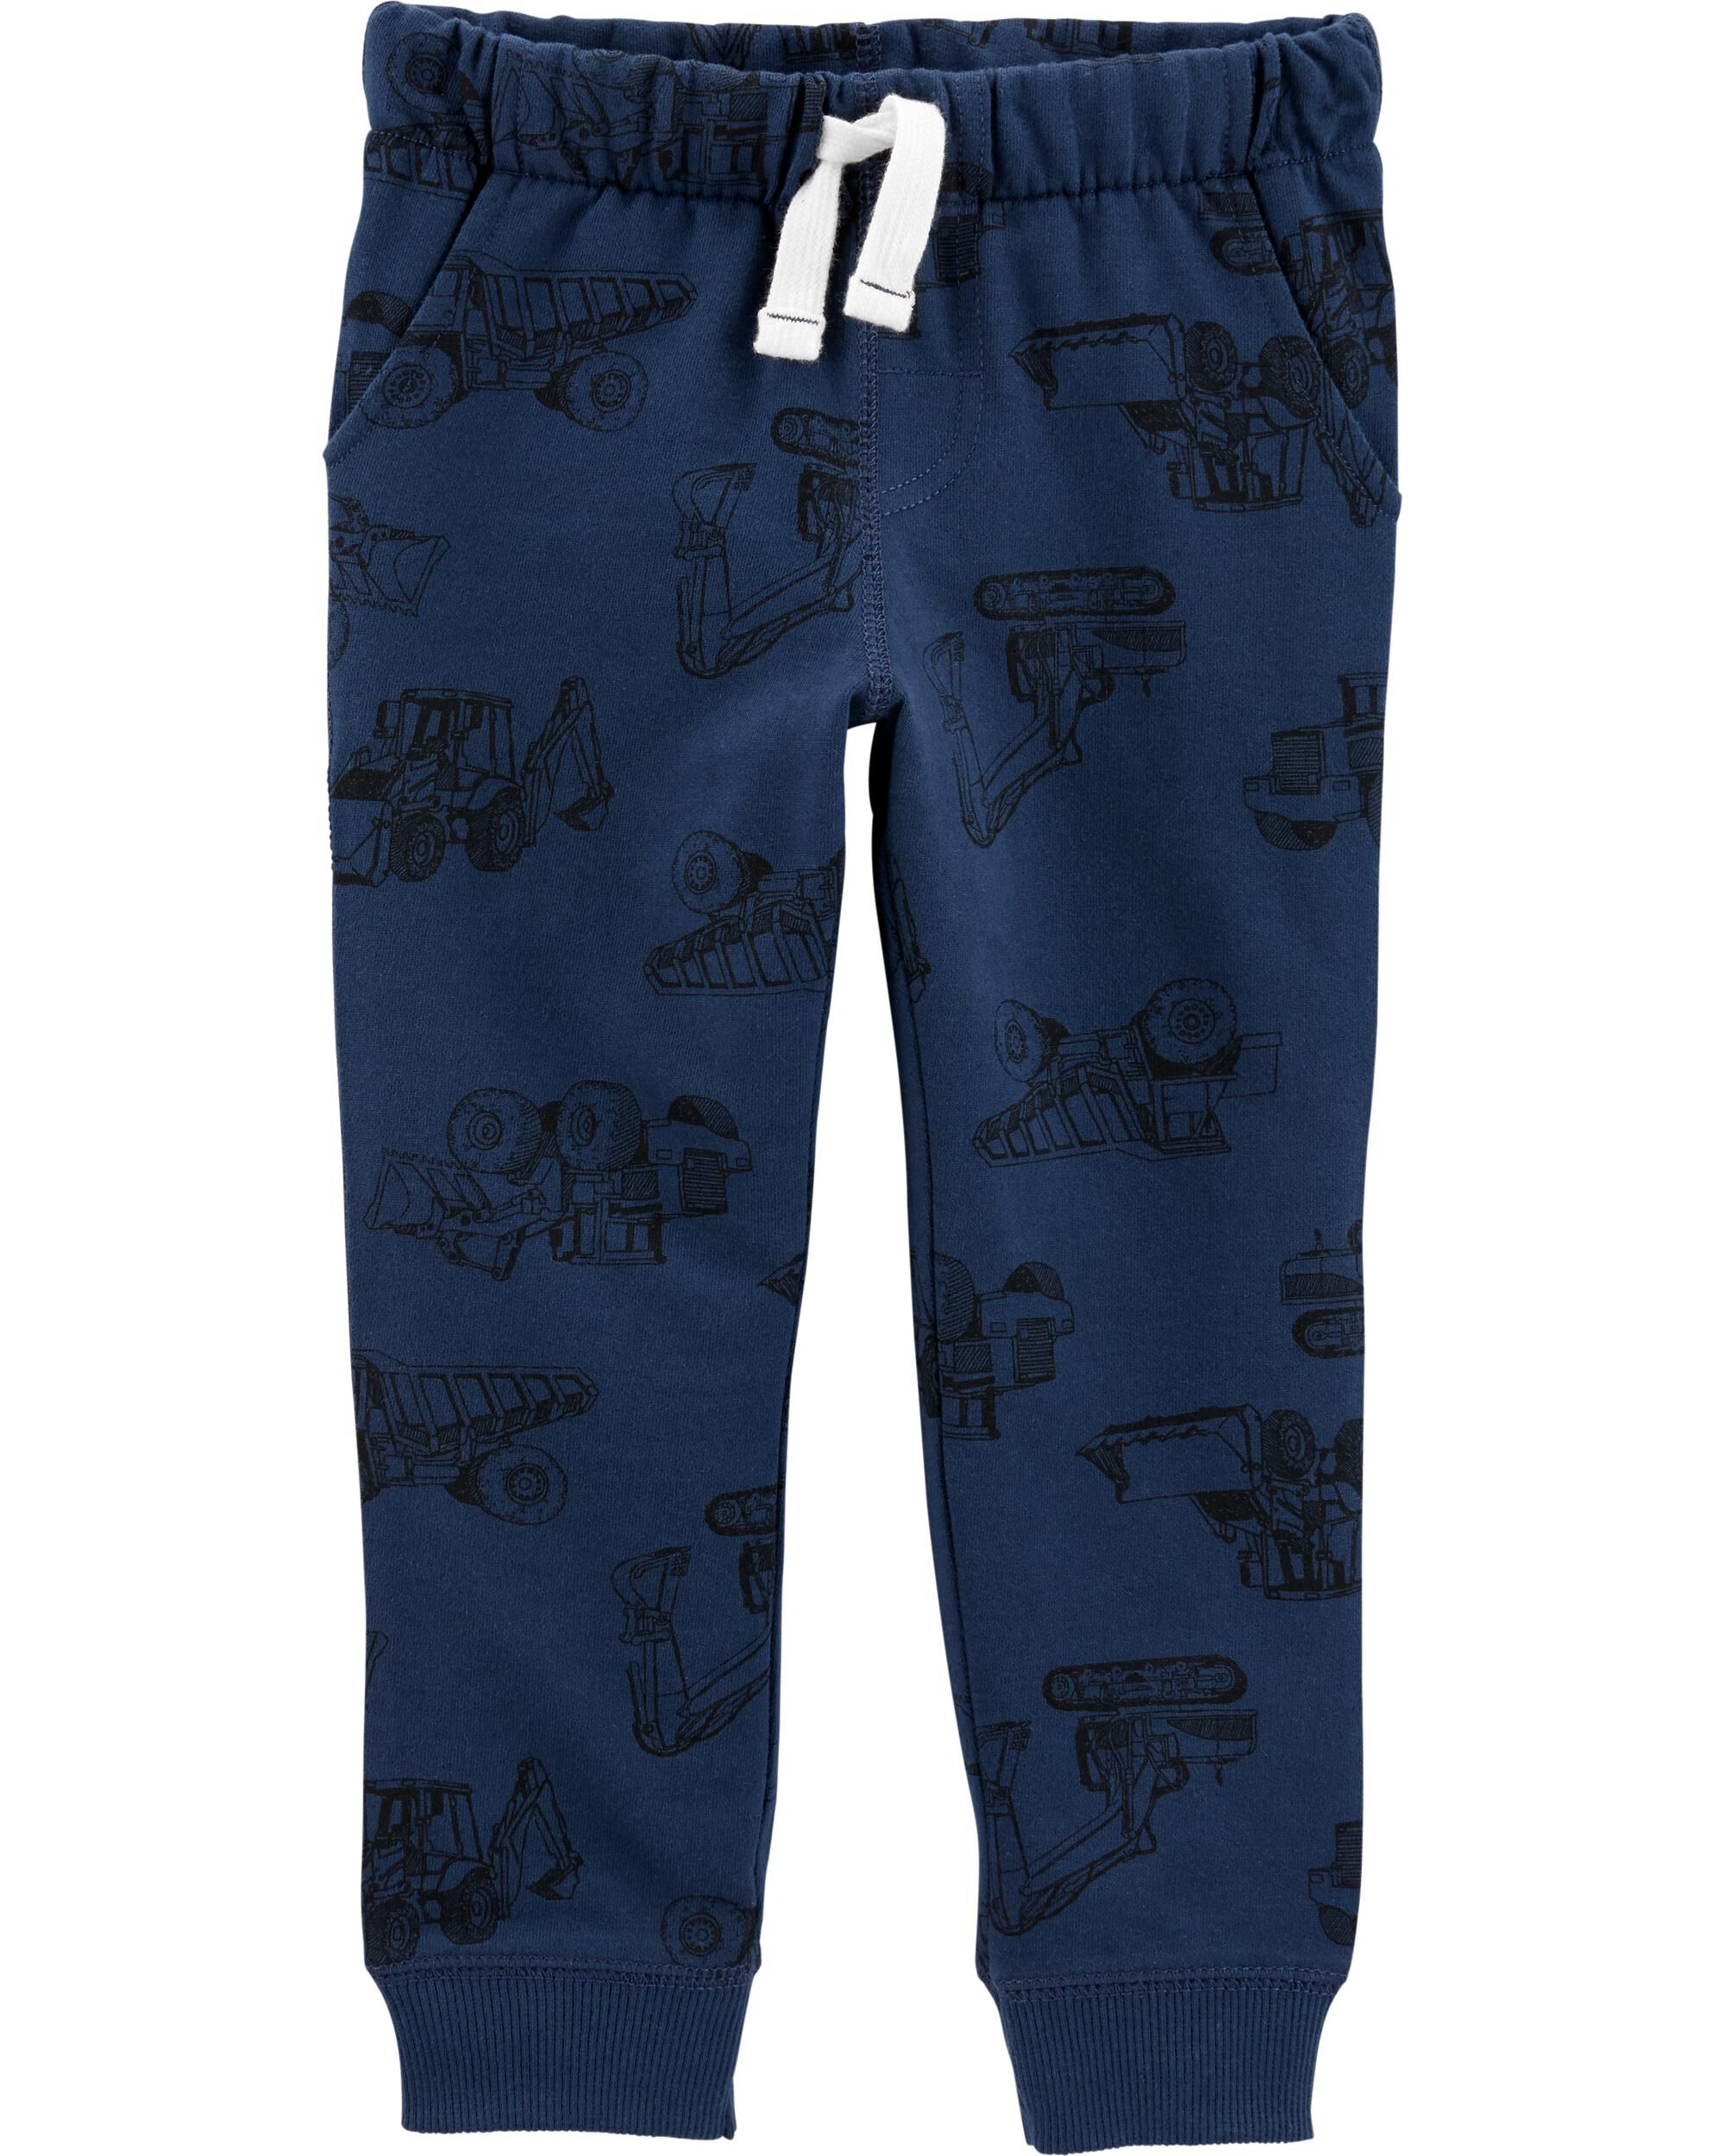 *DOORBUSTER* Construction Pull-On French Terry Joggers